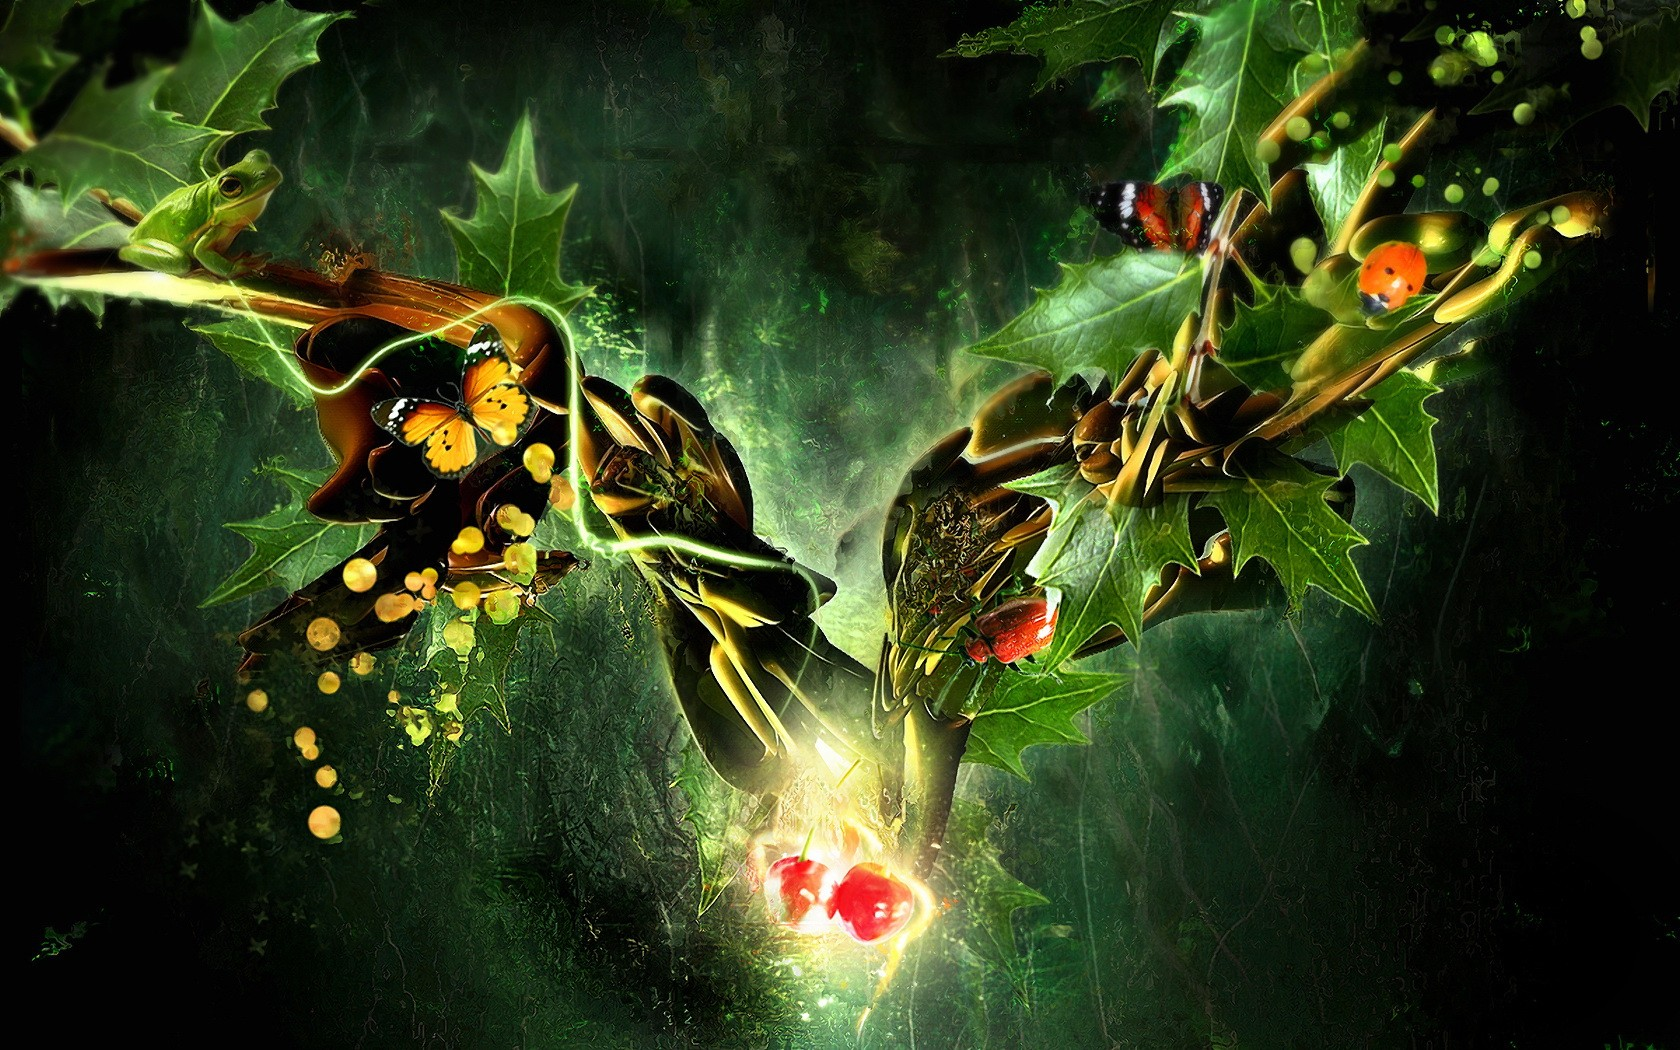 Butterfly Ladybug And Frog In Fantasy World Wide